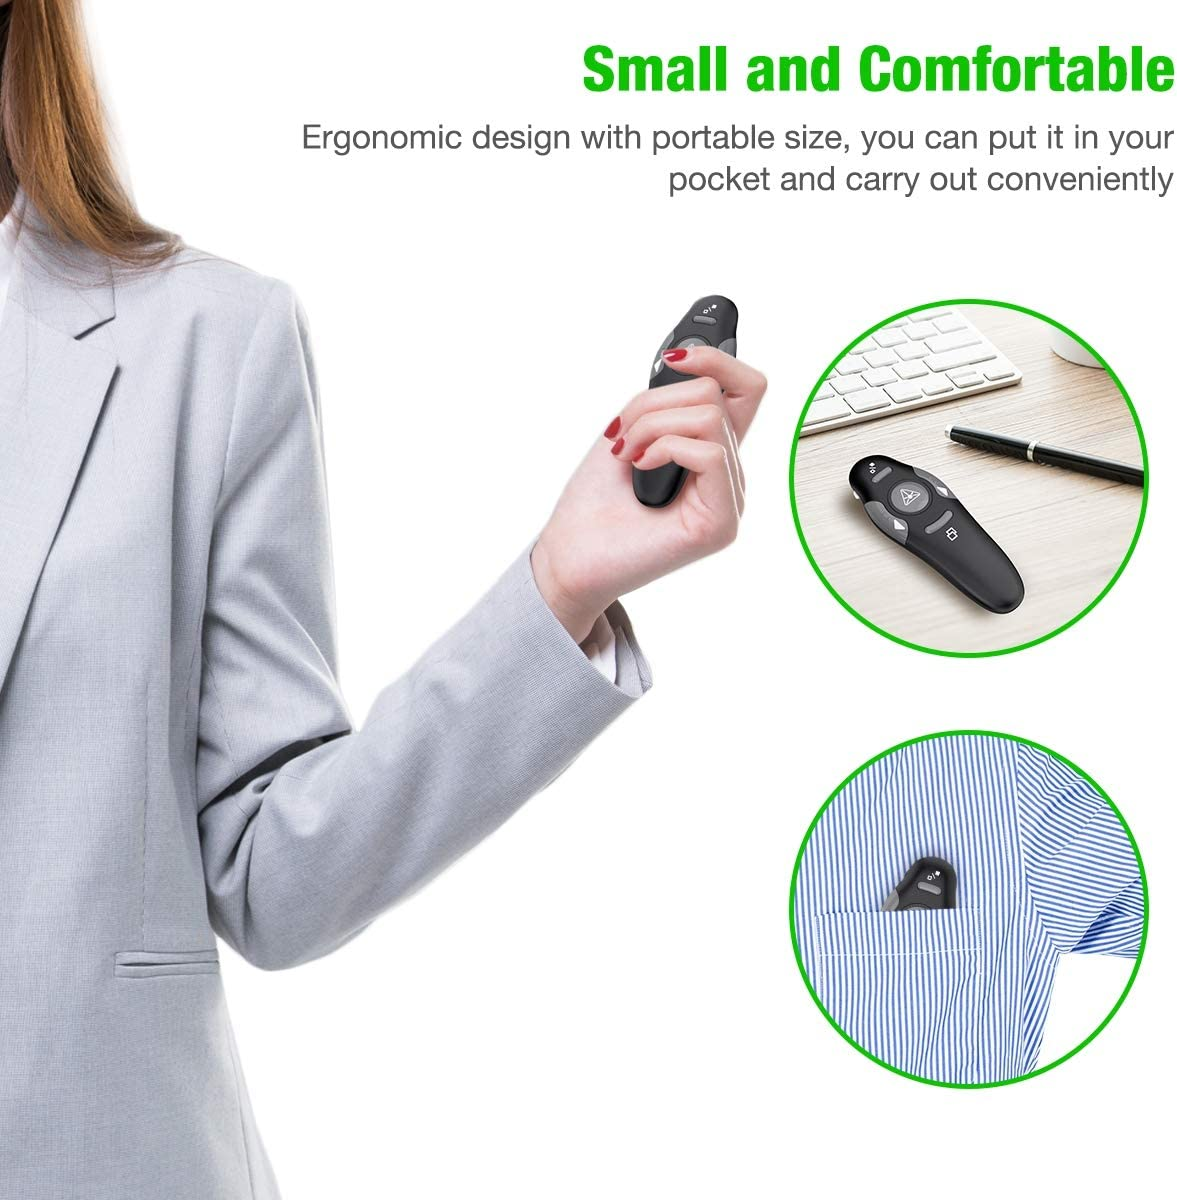 Mac Keynote Laptop Presenter Remote with USB Slide Clicker Remote for PPT Powerpoint Clicker BEBONCOOL Wireless Presentation Clicker with Green Light Computer